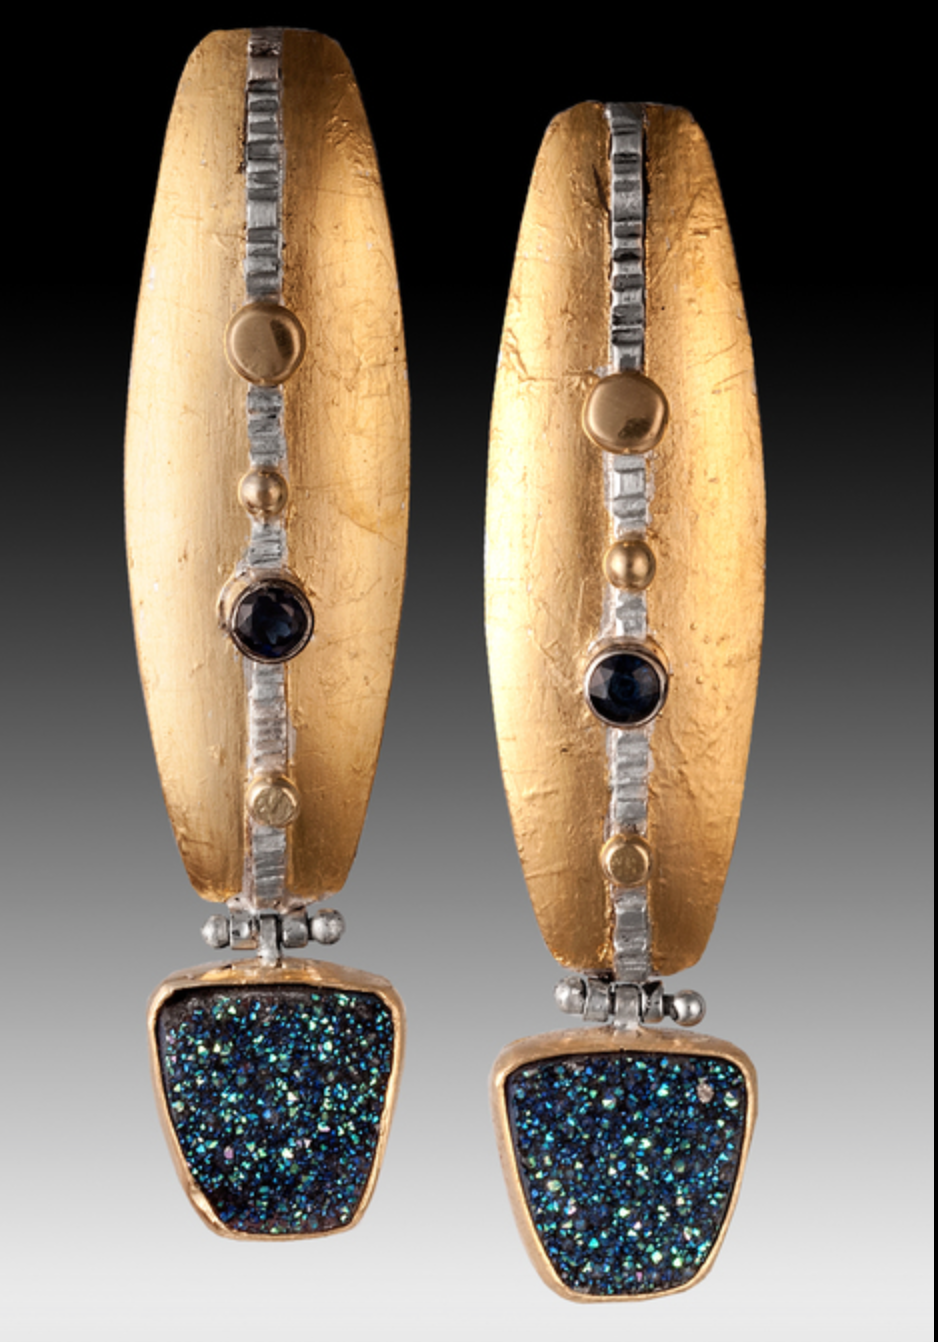 Sandy Harris Murphy - http://www.sandyharrismurphy.comConsciously sourced diamonds,precious and semi- stones are incorporated in fabricated designs.Keumboo,22K and 14K gold refined in the Colorado studio ('green' metal) in hand fabricated designs.